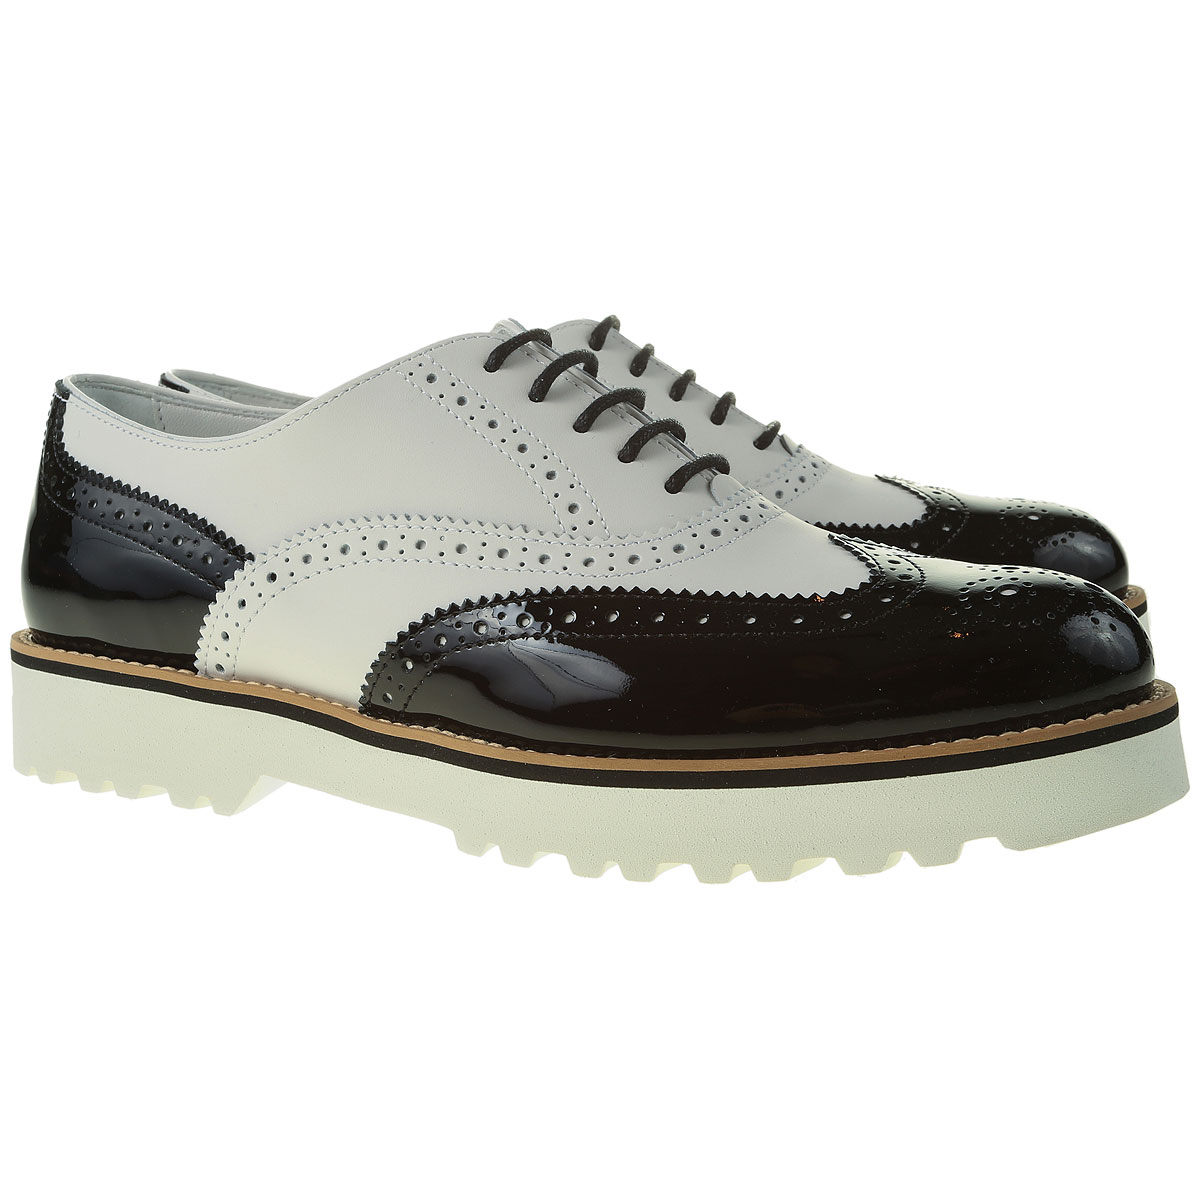 Hogan Brogues Oxford Shoes On Sale in Outlet, White, Leather, 2019, 6.5 8